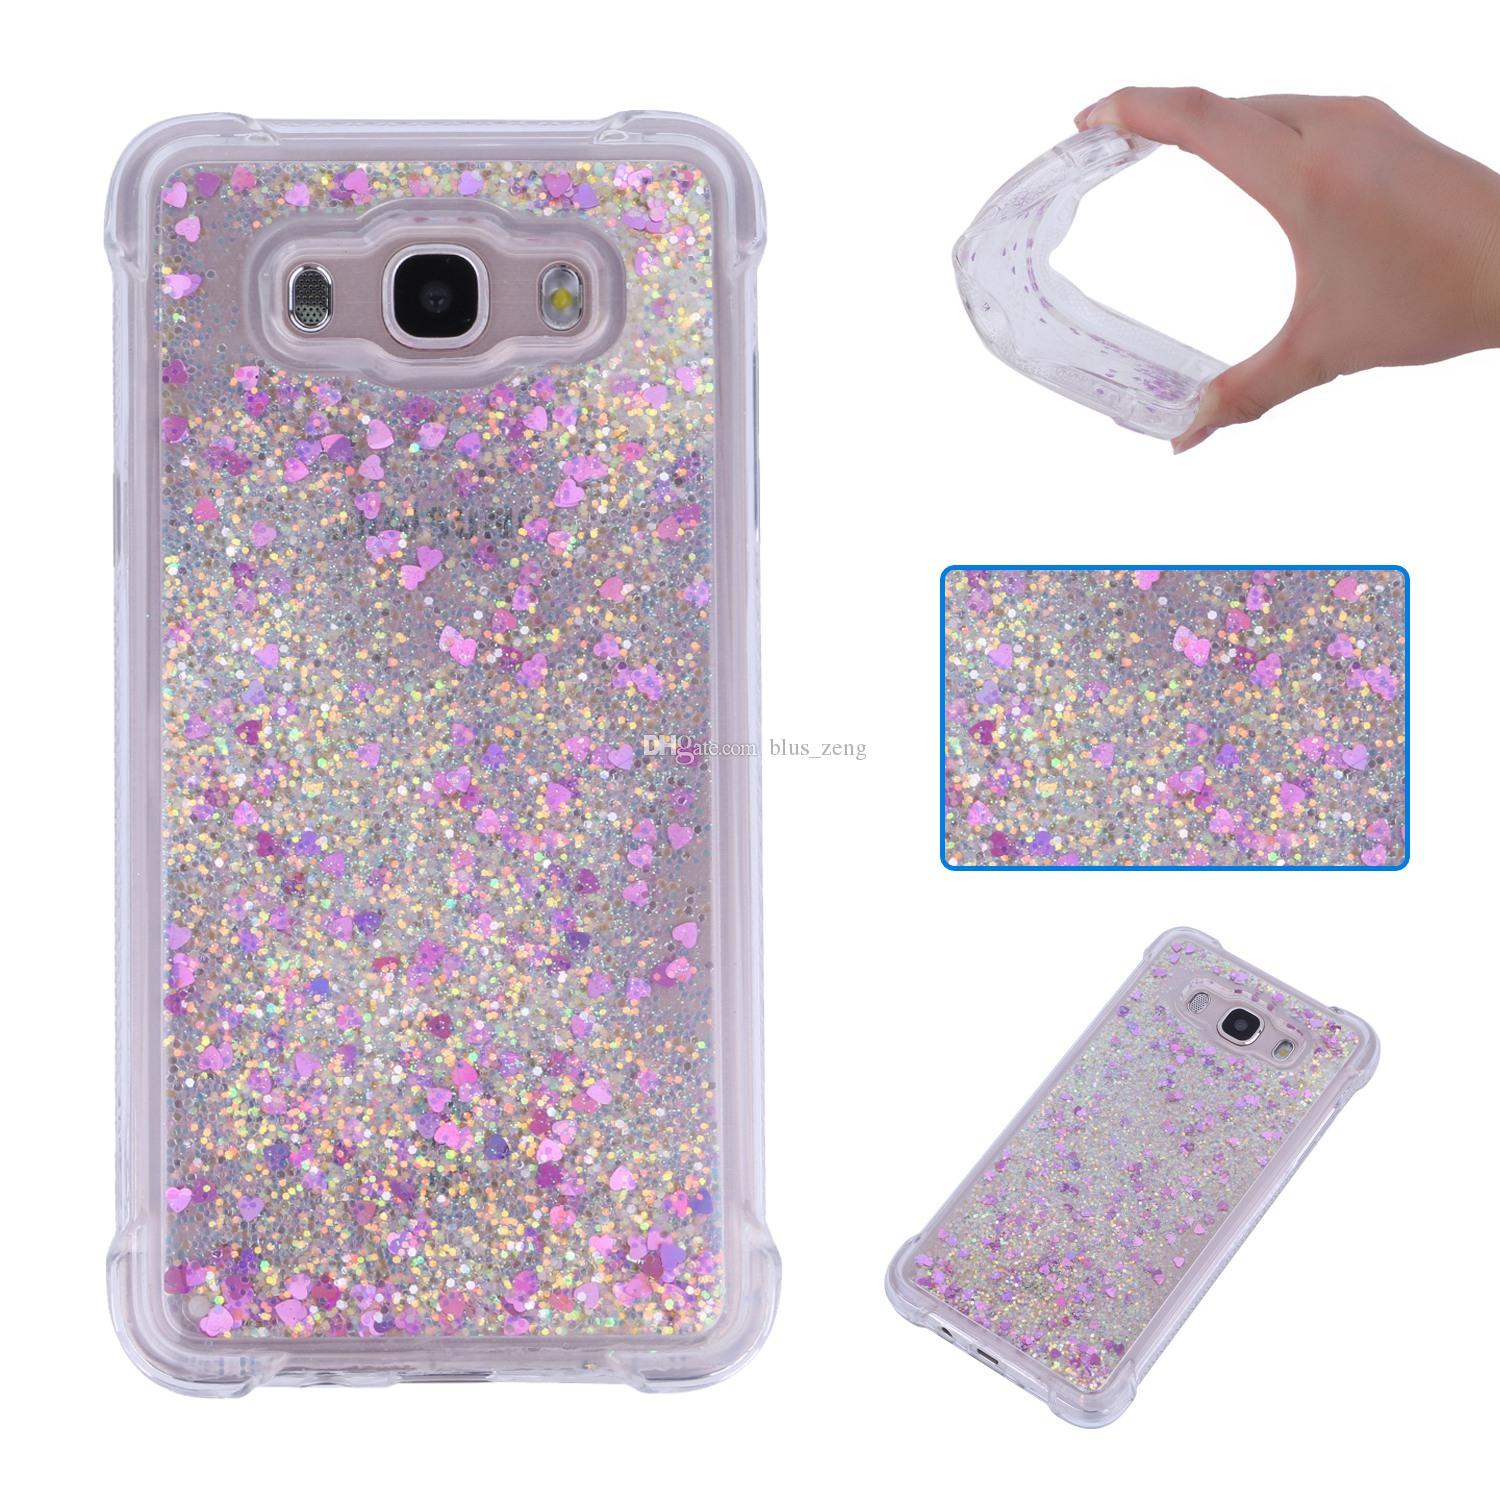 Quicksand Moving Bling Glitter Floating Dynamic Transparent Case Drop Proof Shell for Samsung Galaxy J3 J7 J1 J5 J7 2016 J330 J530 J730 2017 Liquid Case